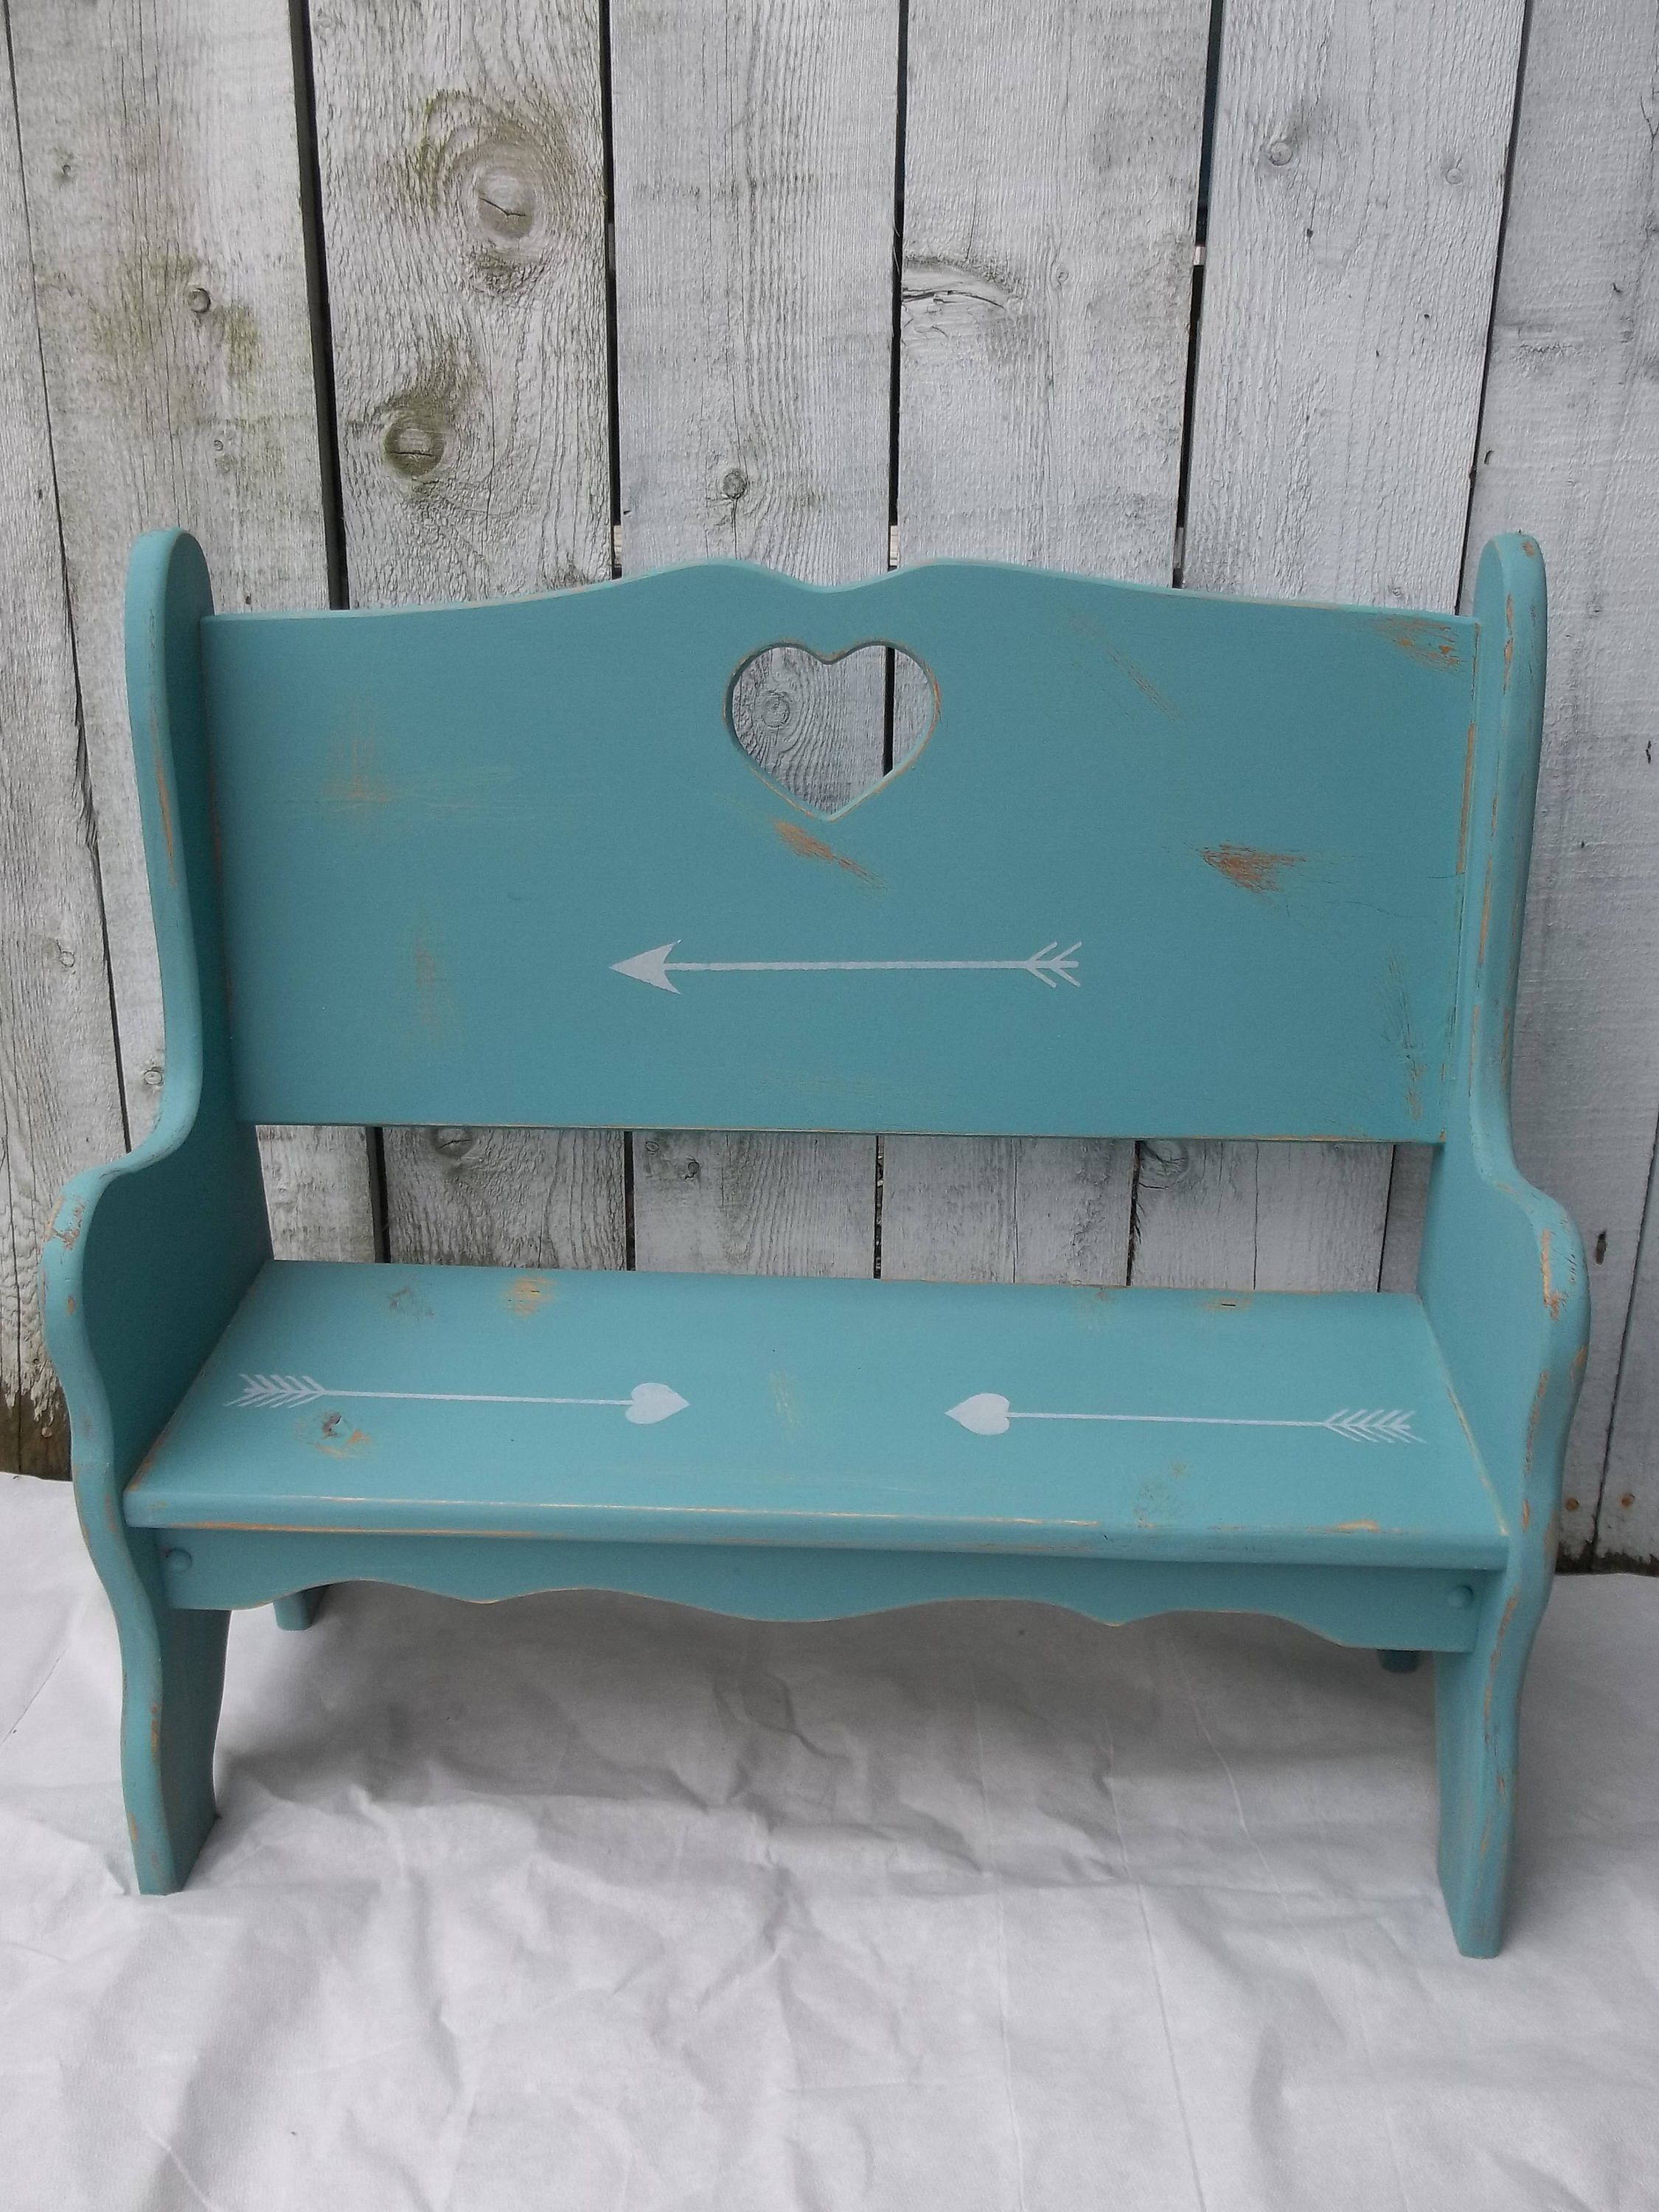 Remarkable Wood Bench Shabby Chic Childs Bench Vintage Rustic Teal Theyellowbook Wood Chair Design Ideas Theyellowbookinfo